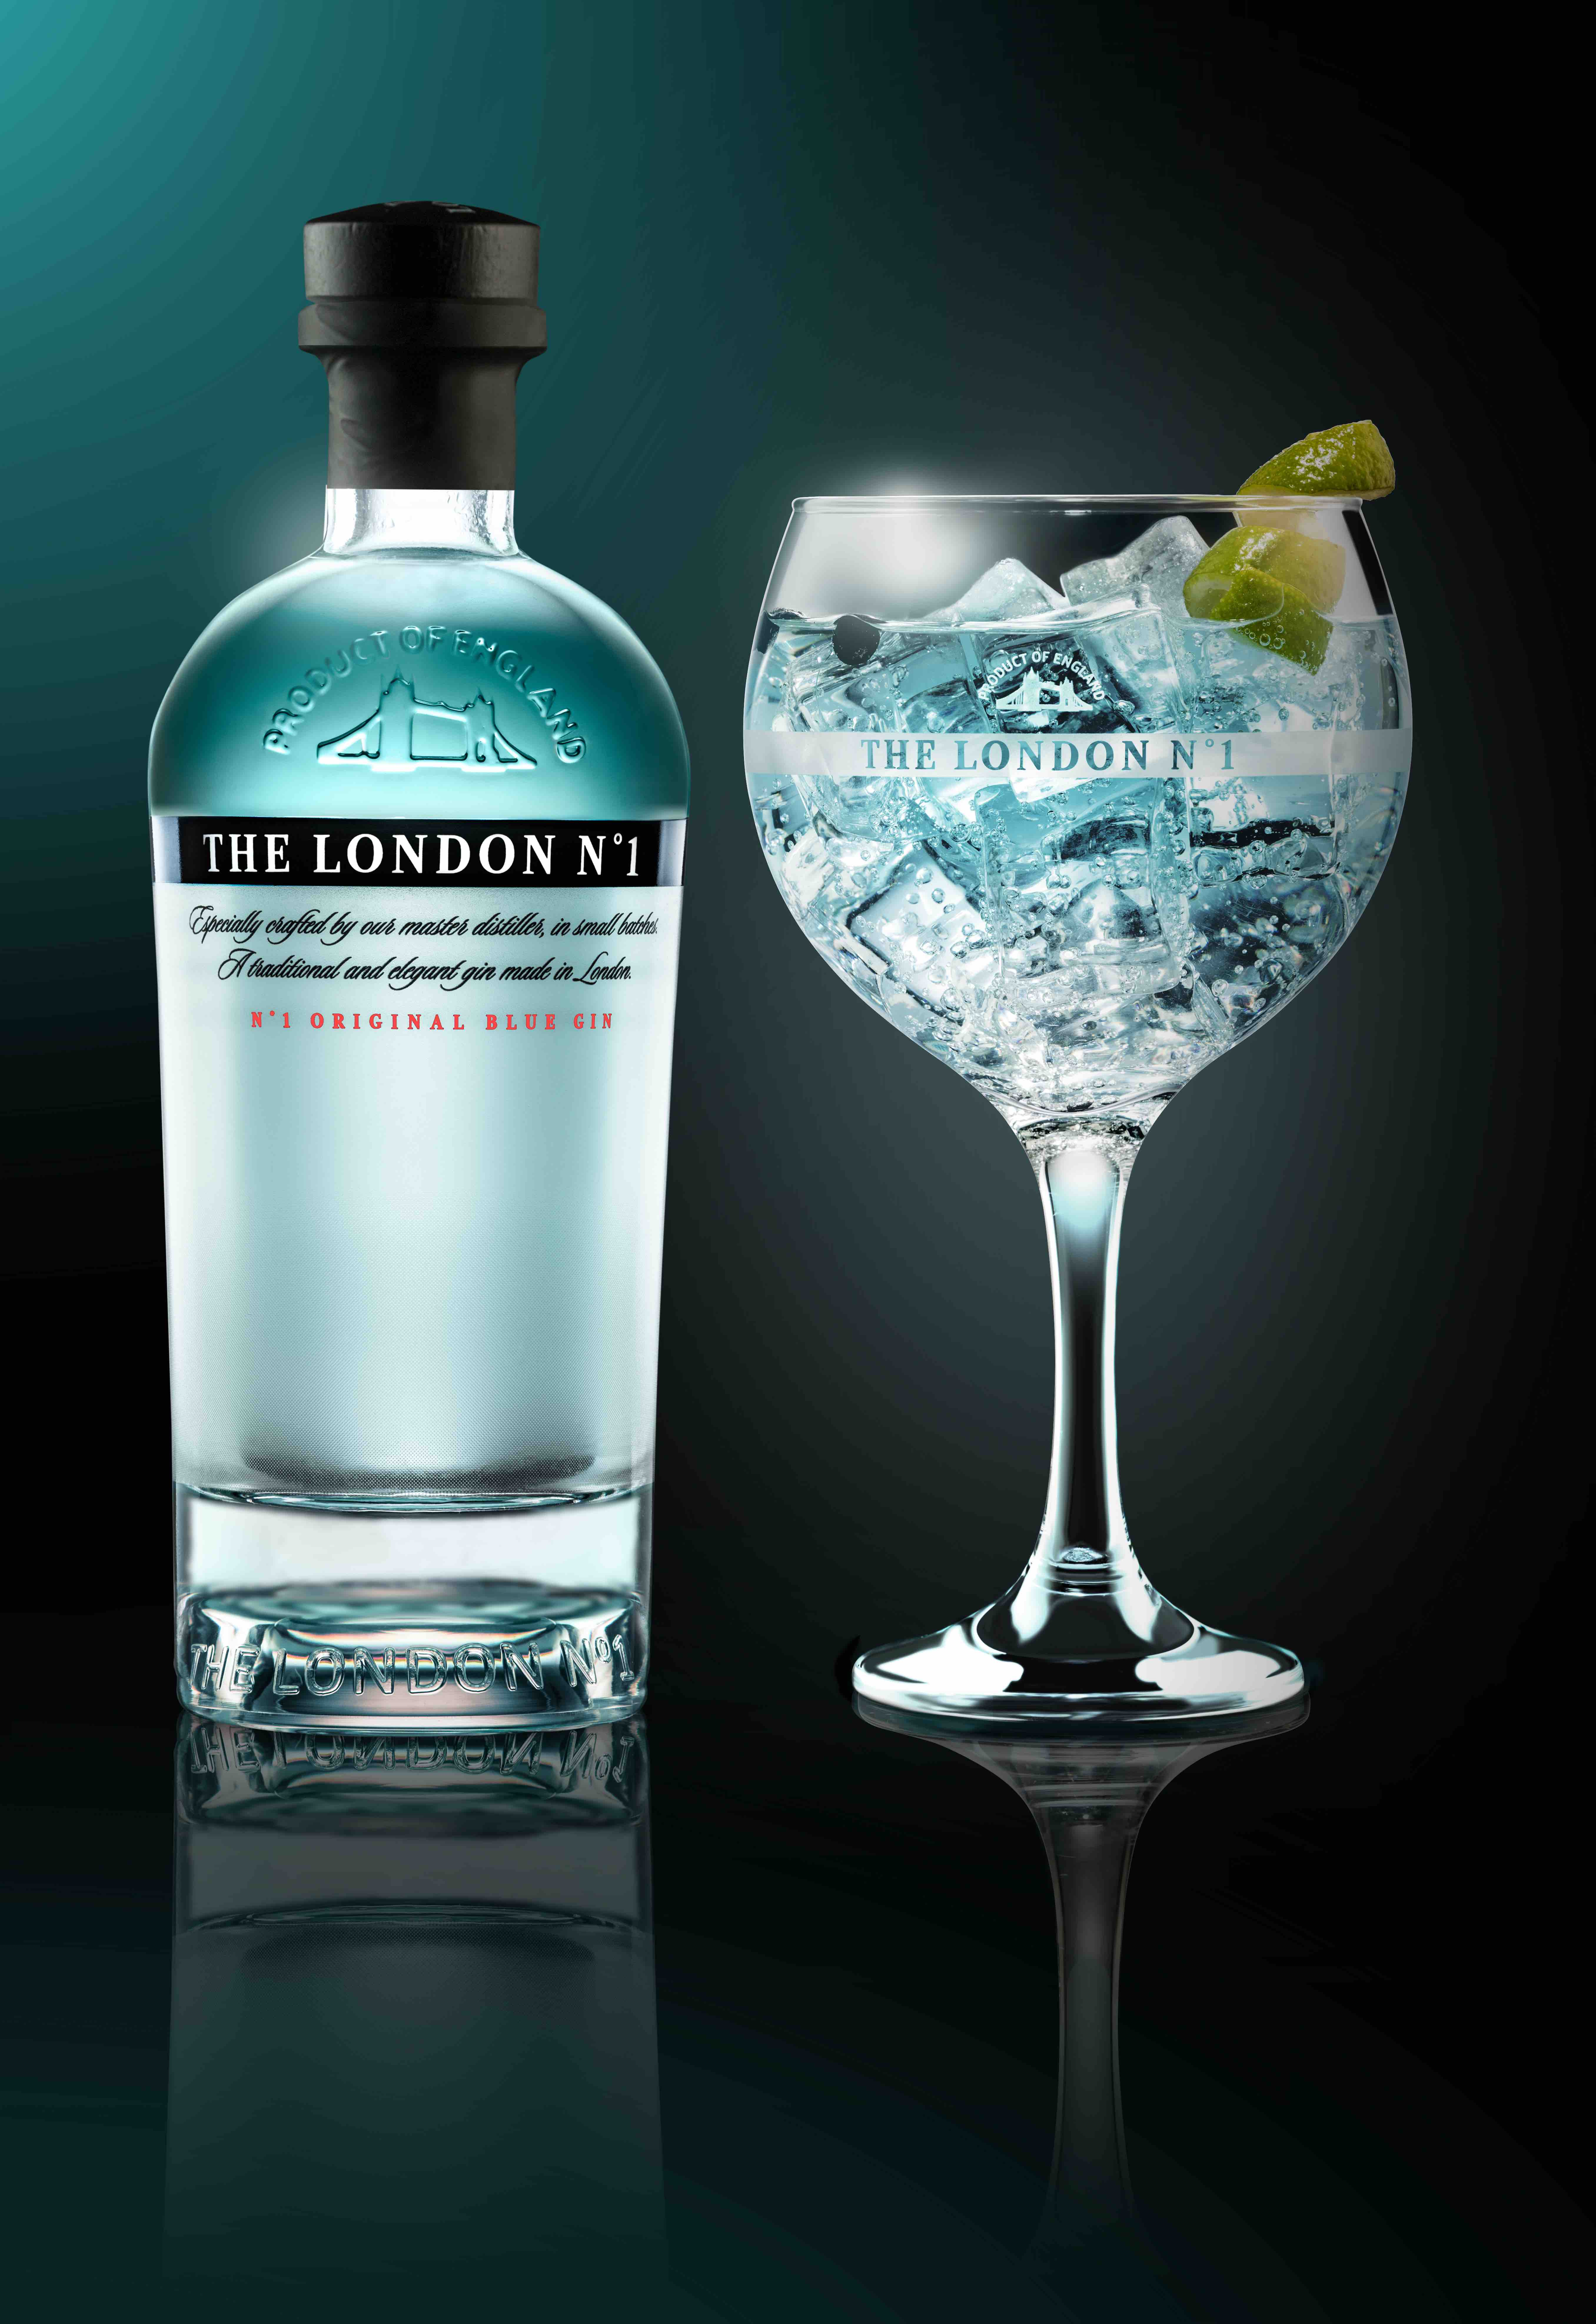 The London N.o1 Gin Vaderdag - The one only